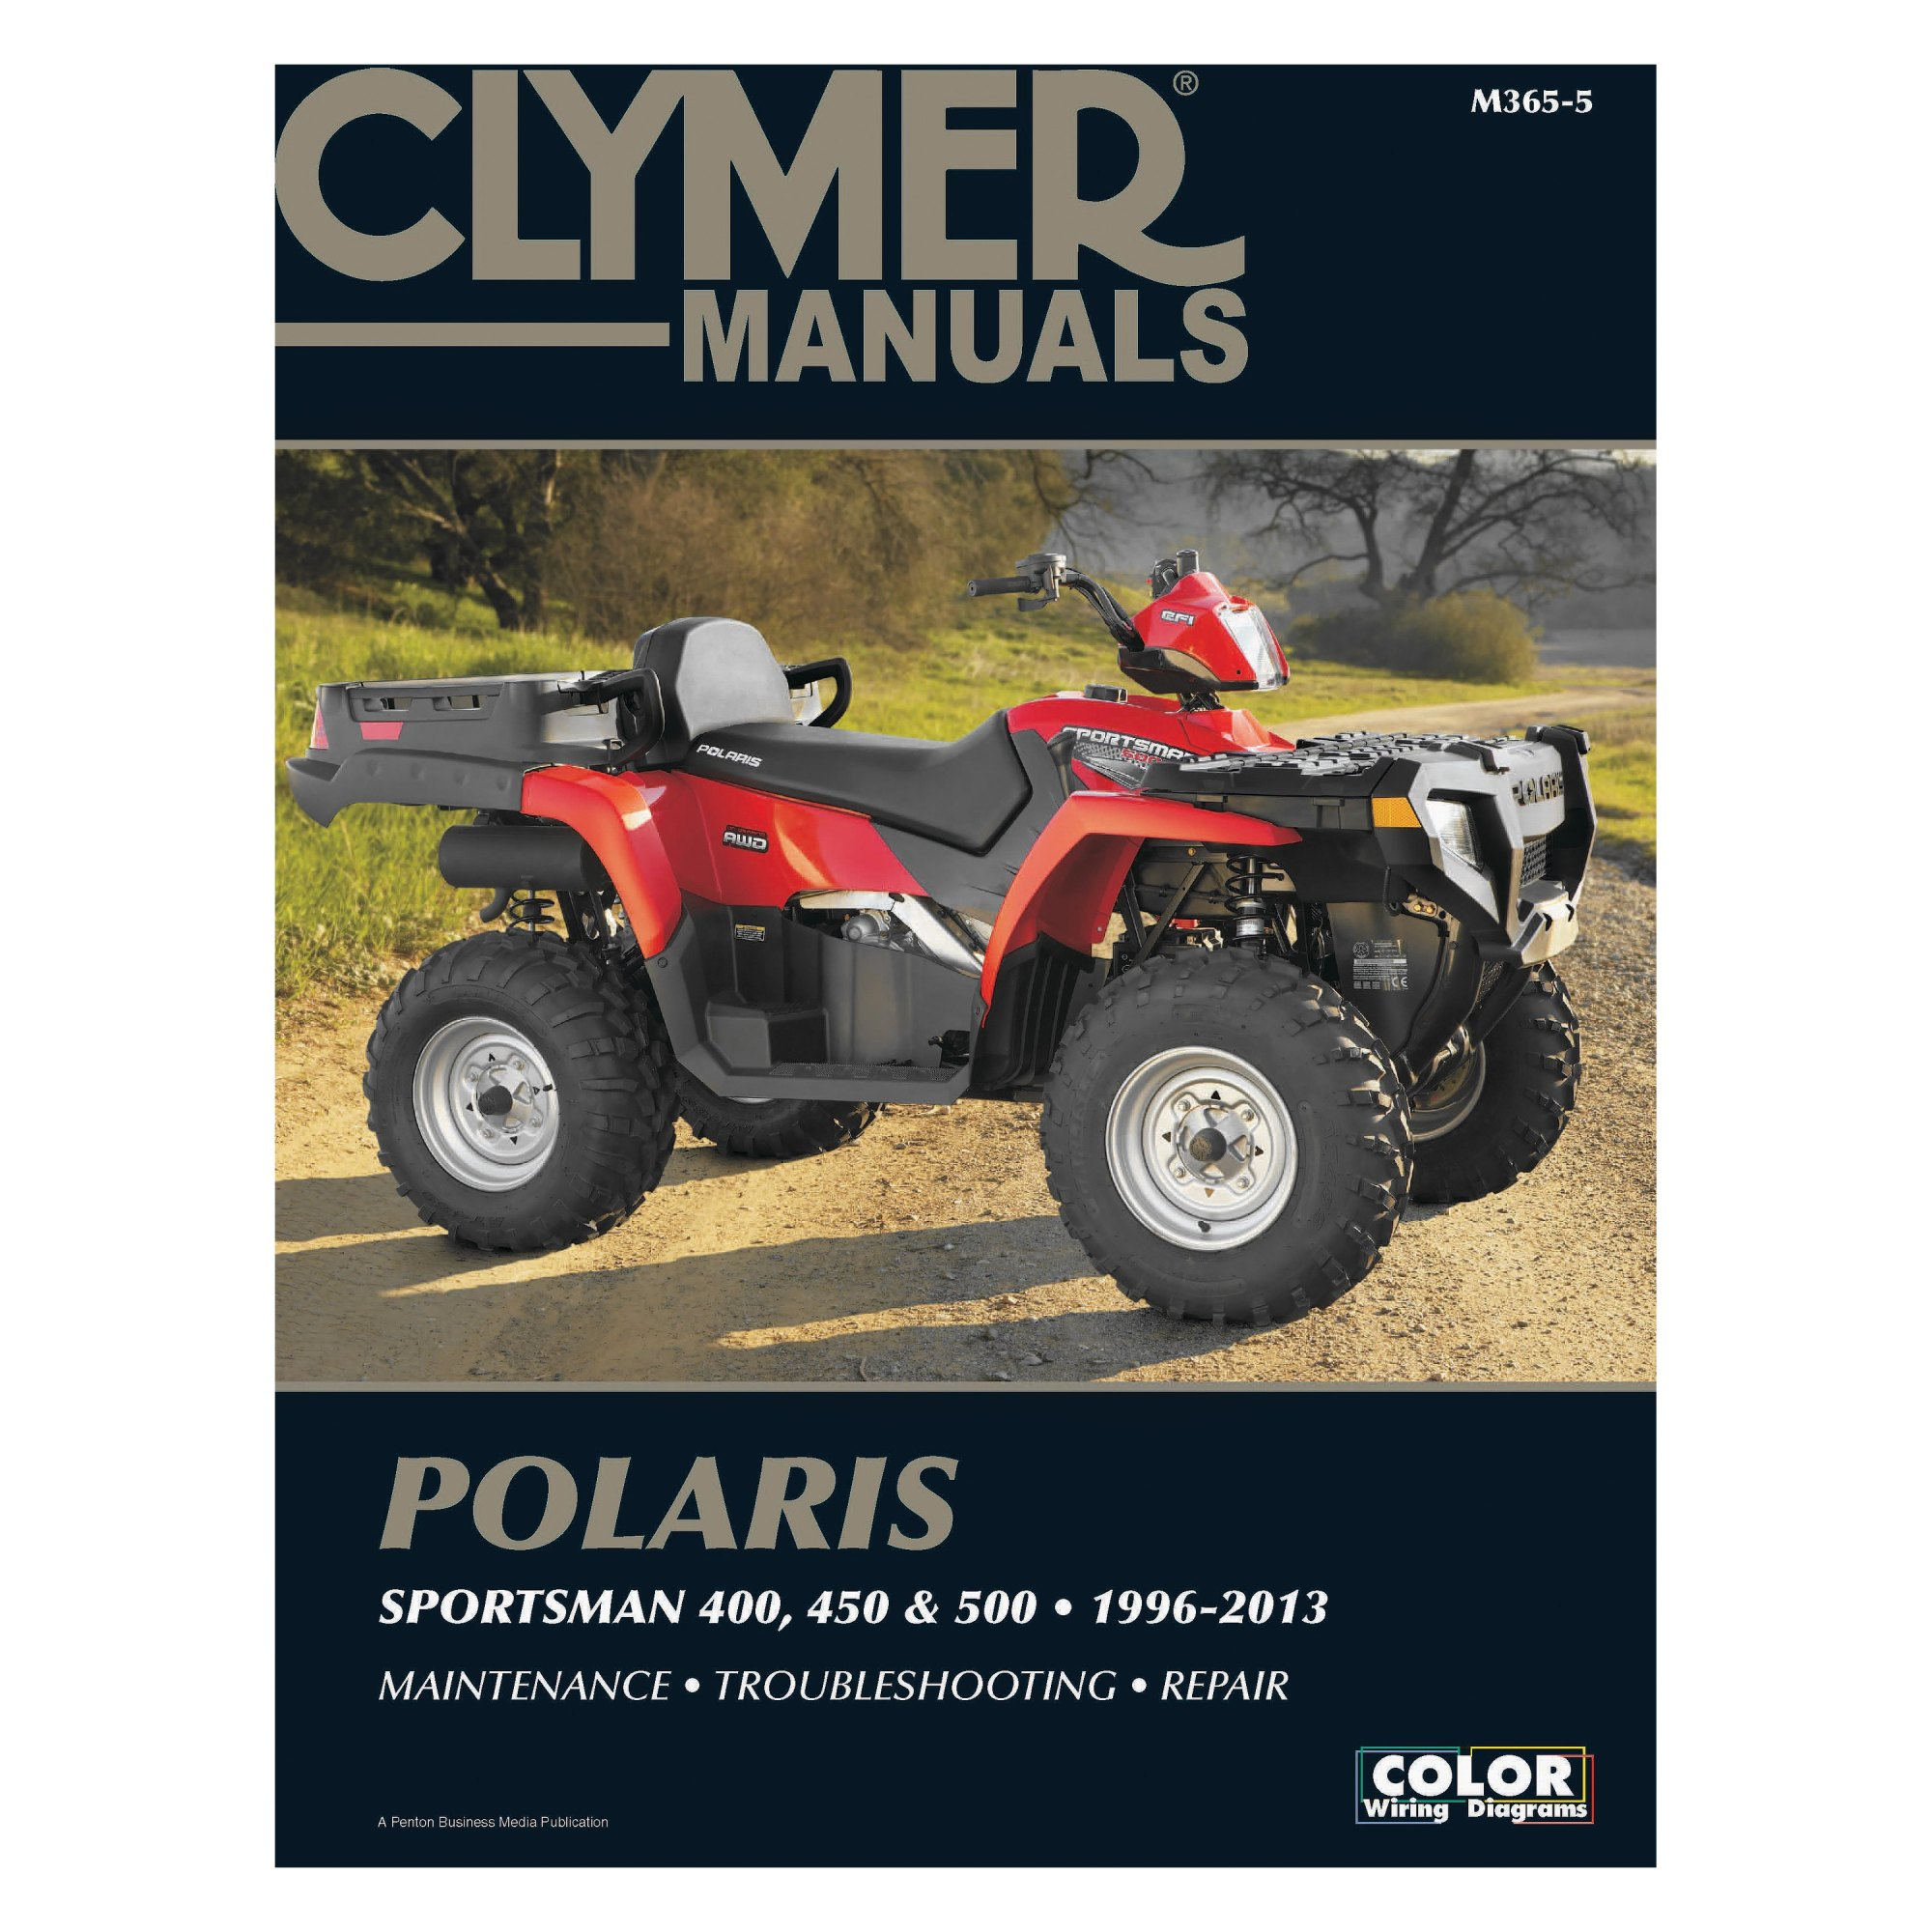 hight resolution of clymer polaris 400 450 and 500 sportsman 1996 2013 manual